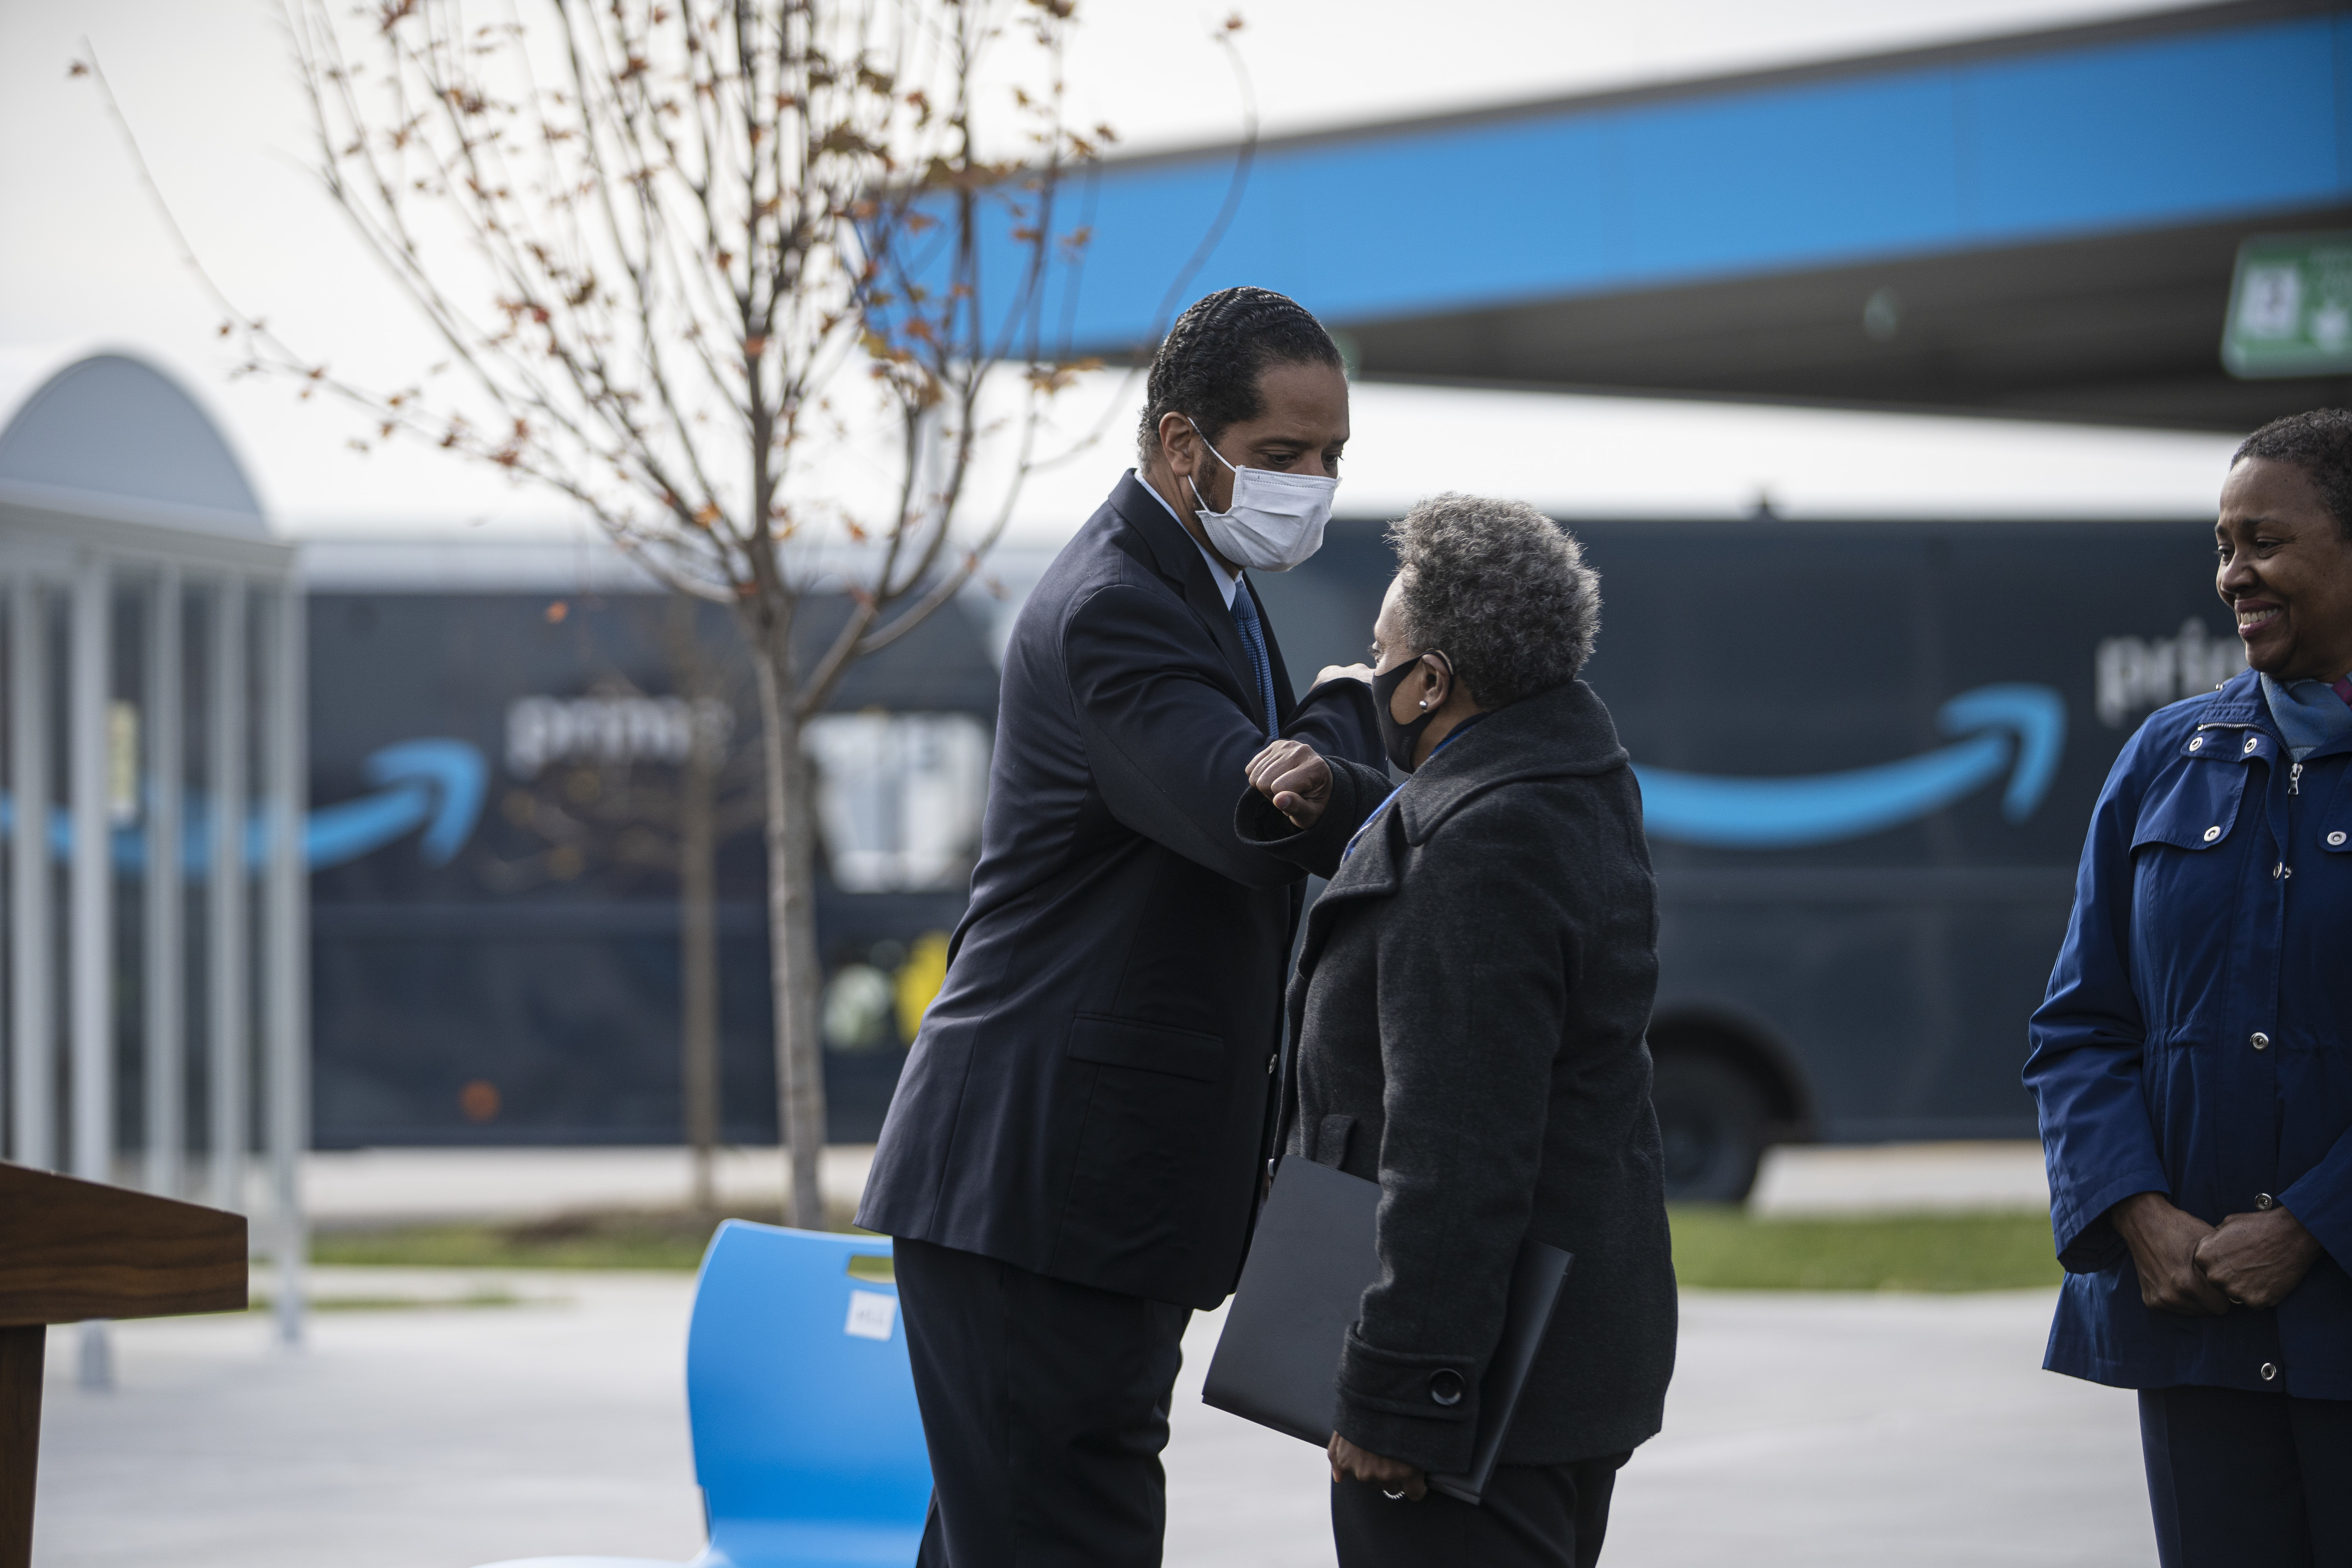 Ald. AnthonyBeale (9th) and Mayor Lori Lightfoot greet one another Wednesday, Oct. 28, 2020 at the ceremonial opening of Chicago's first Amazon Delivery Station, 10500 S. Woodlawn Ave. in Pullman.